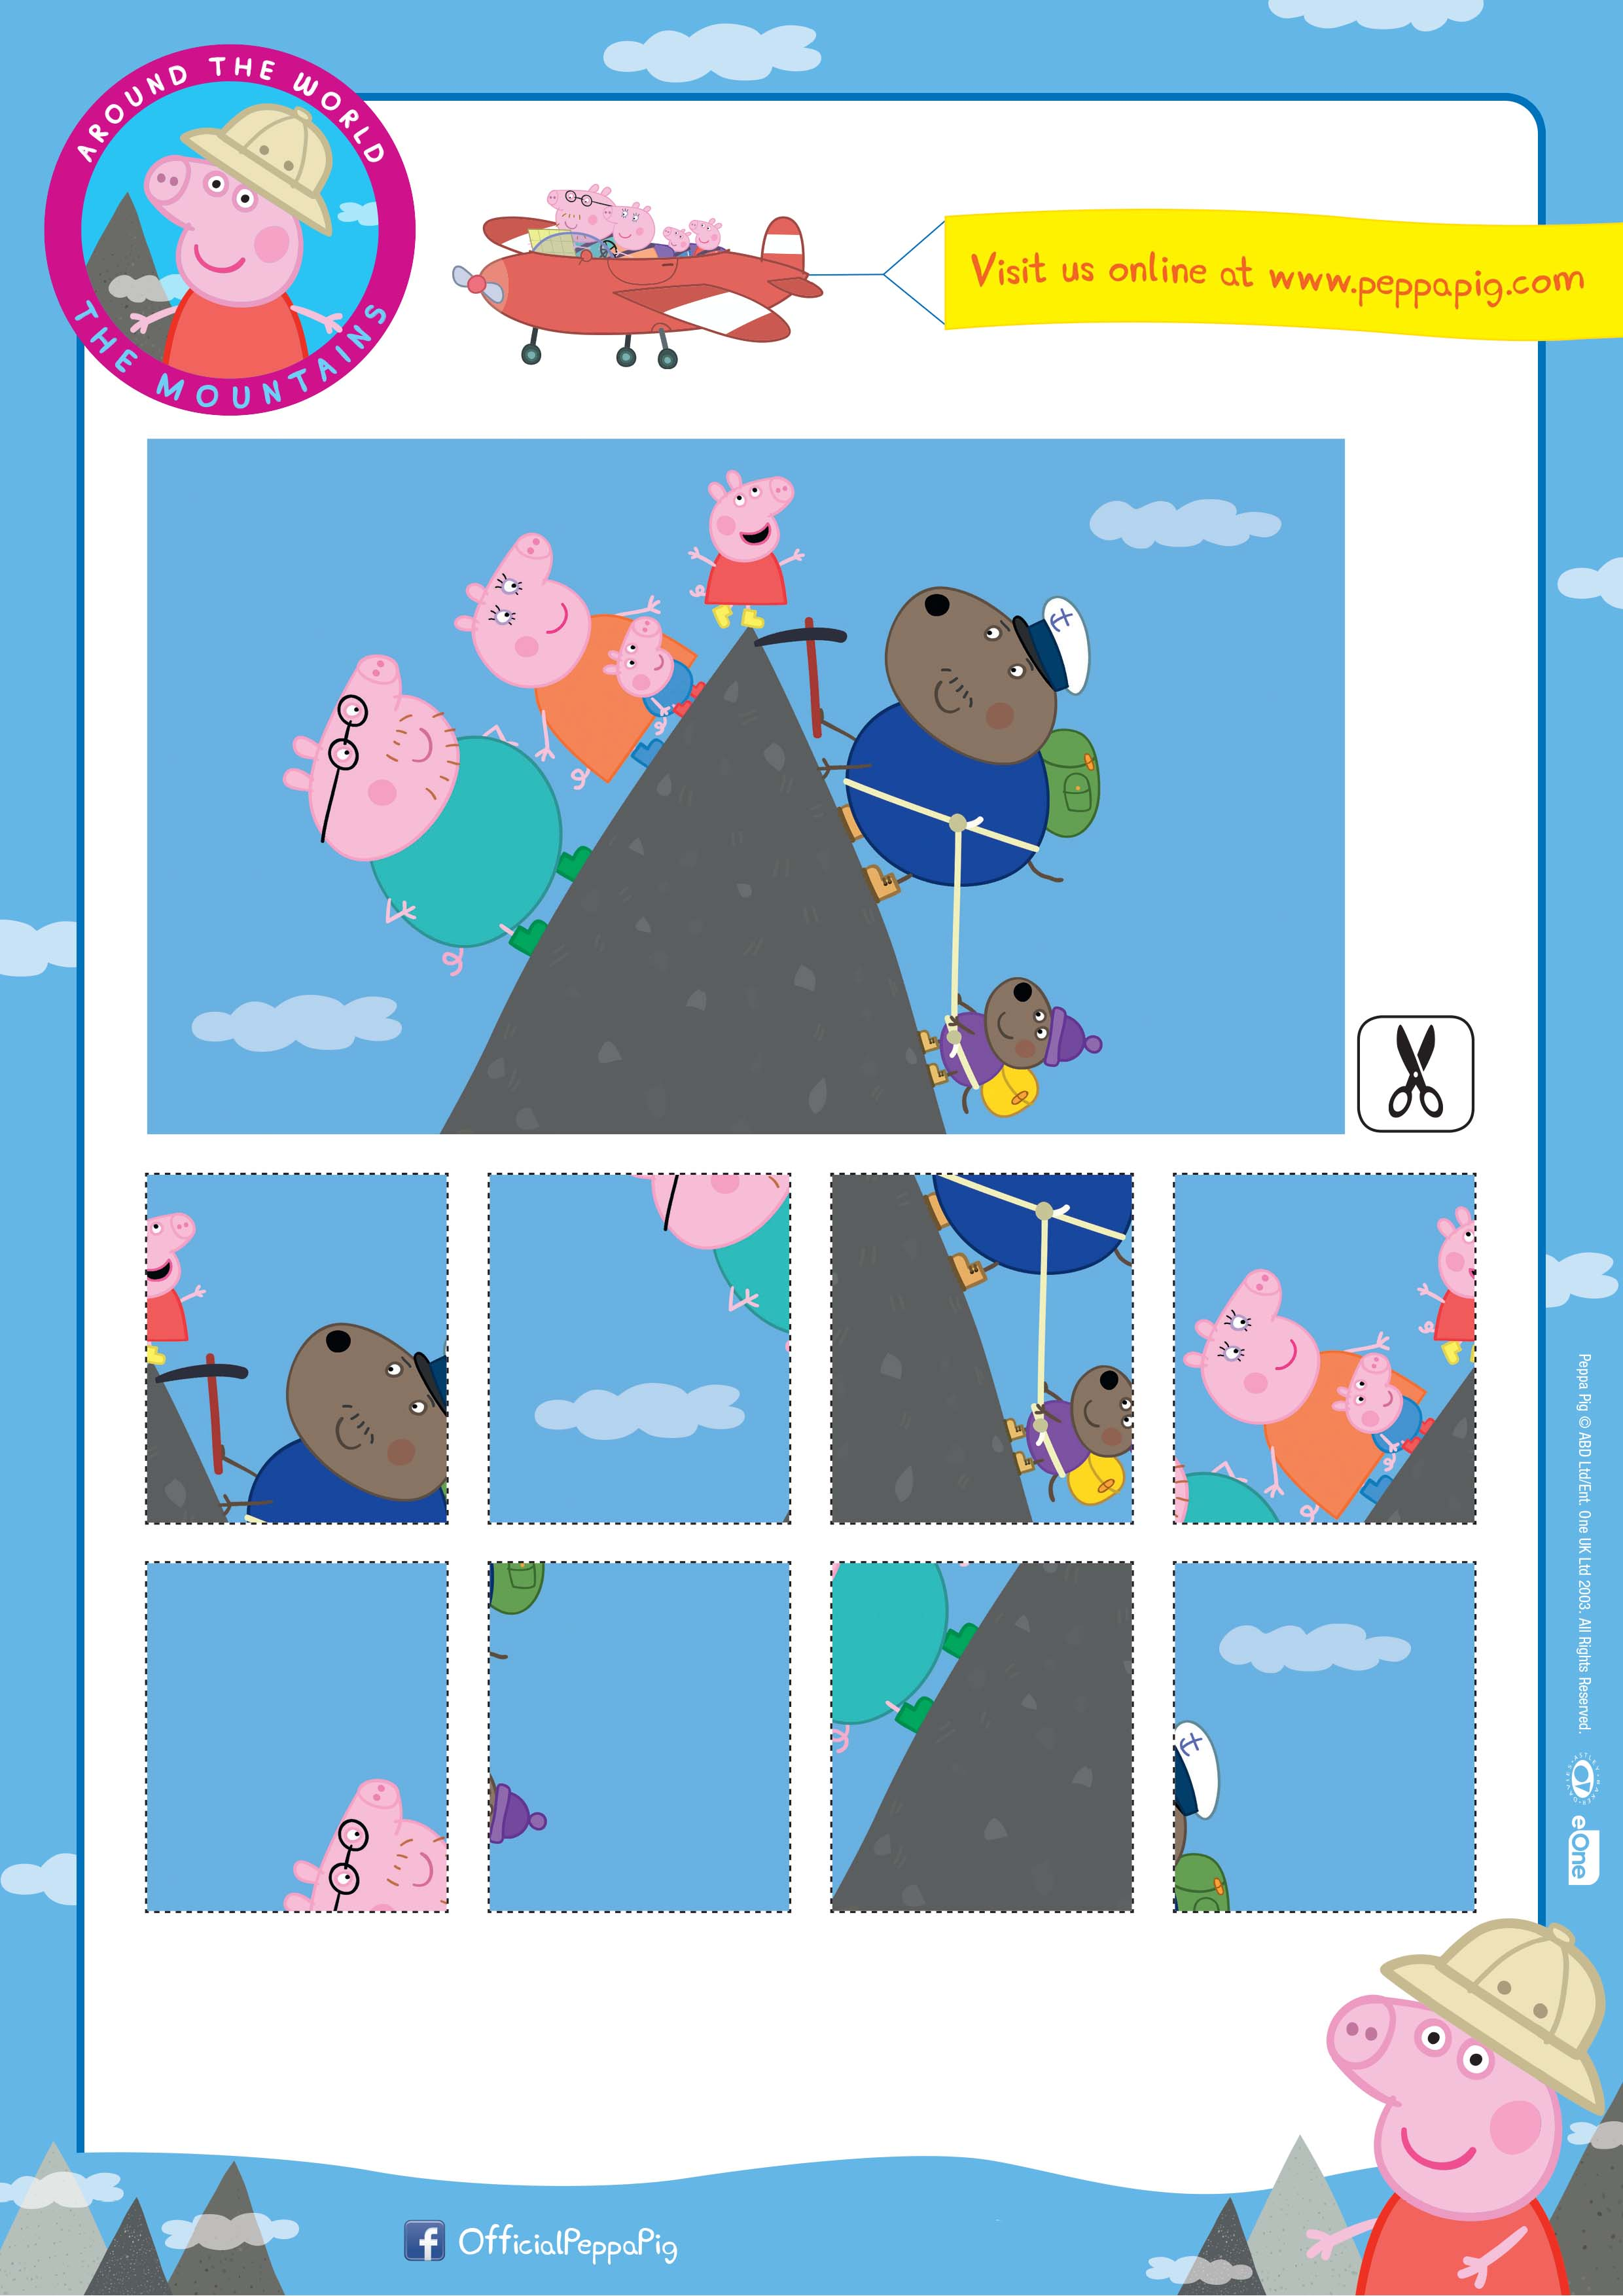 Peppa Pig Downloadable Activity Sheets